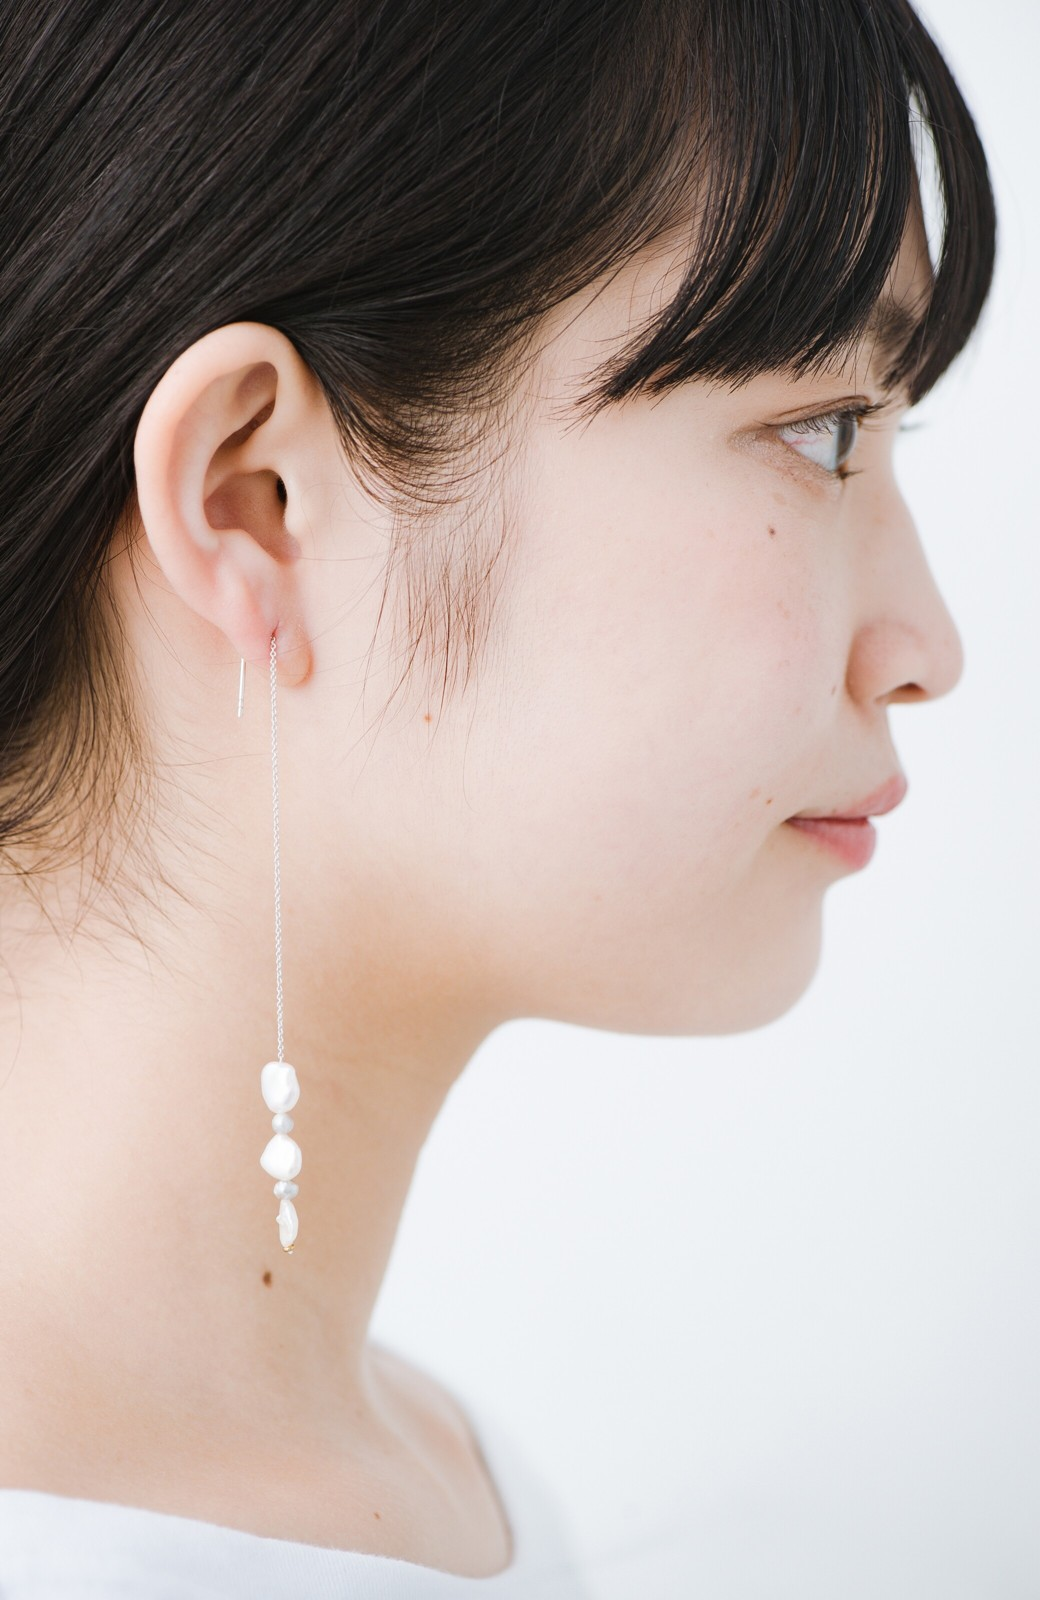 haco! 連なるチェーン&淡水パールがきれいなピアス ines by ciika <グレー>の商品写真4